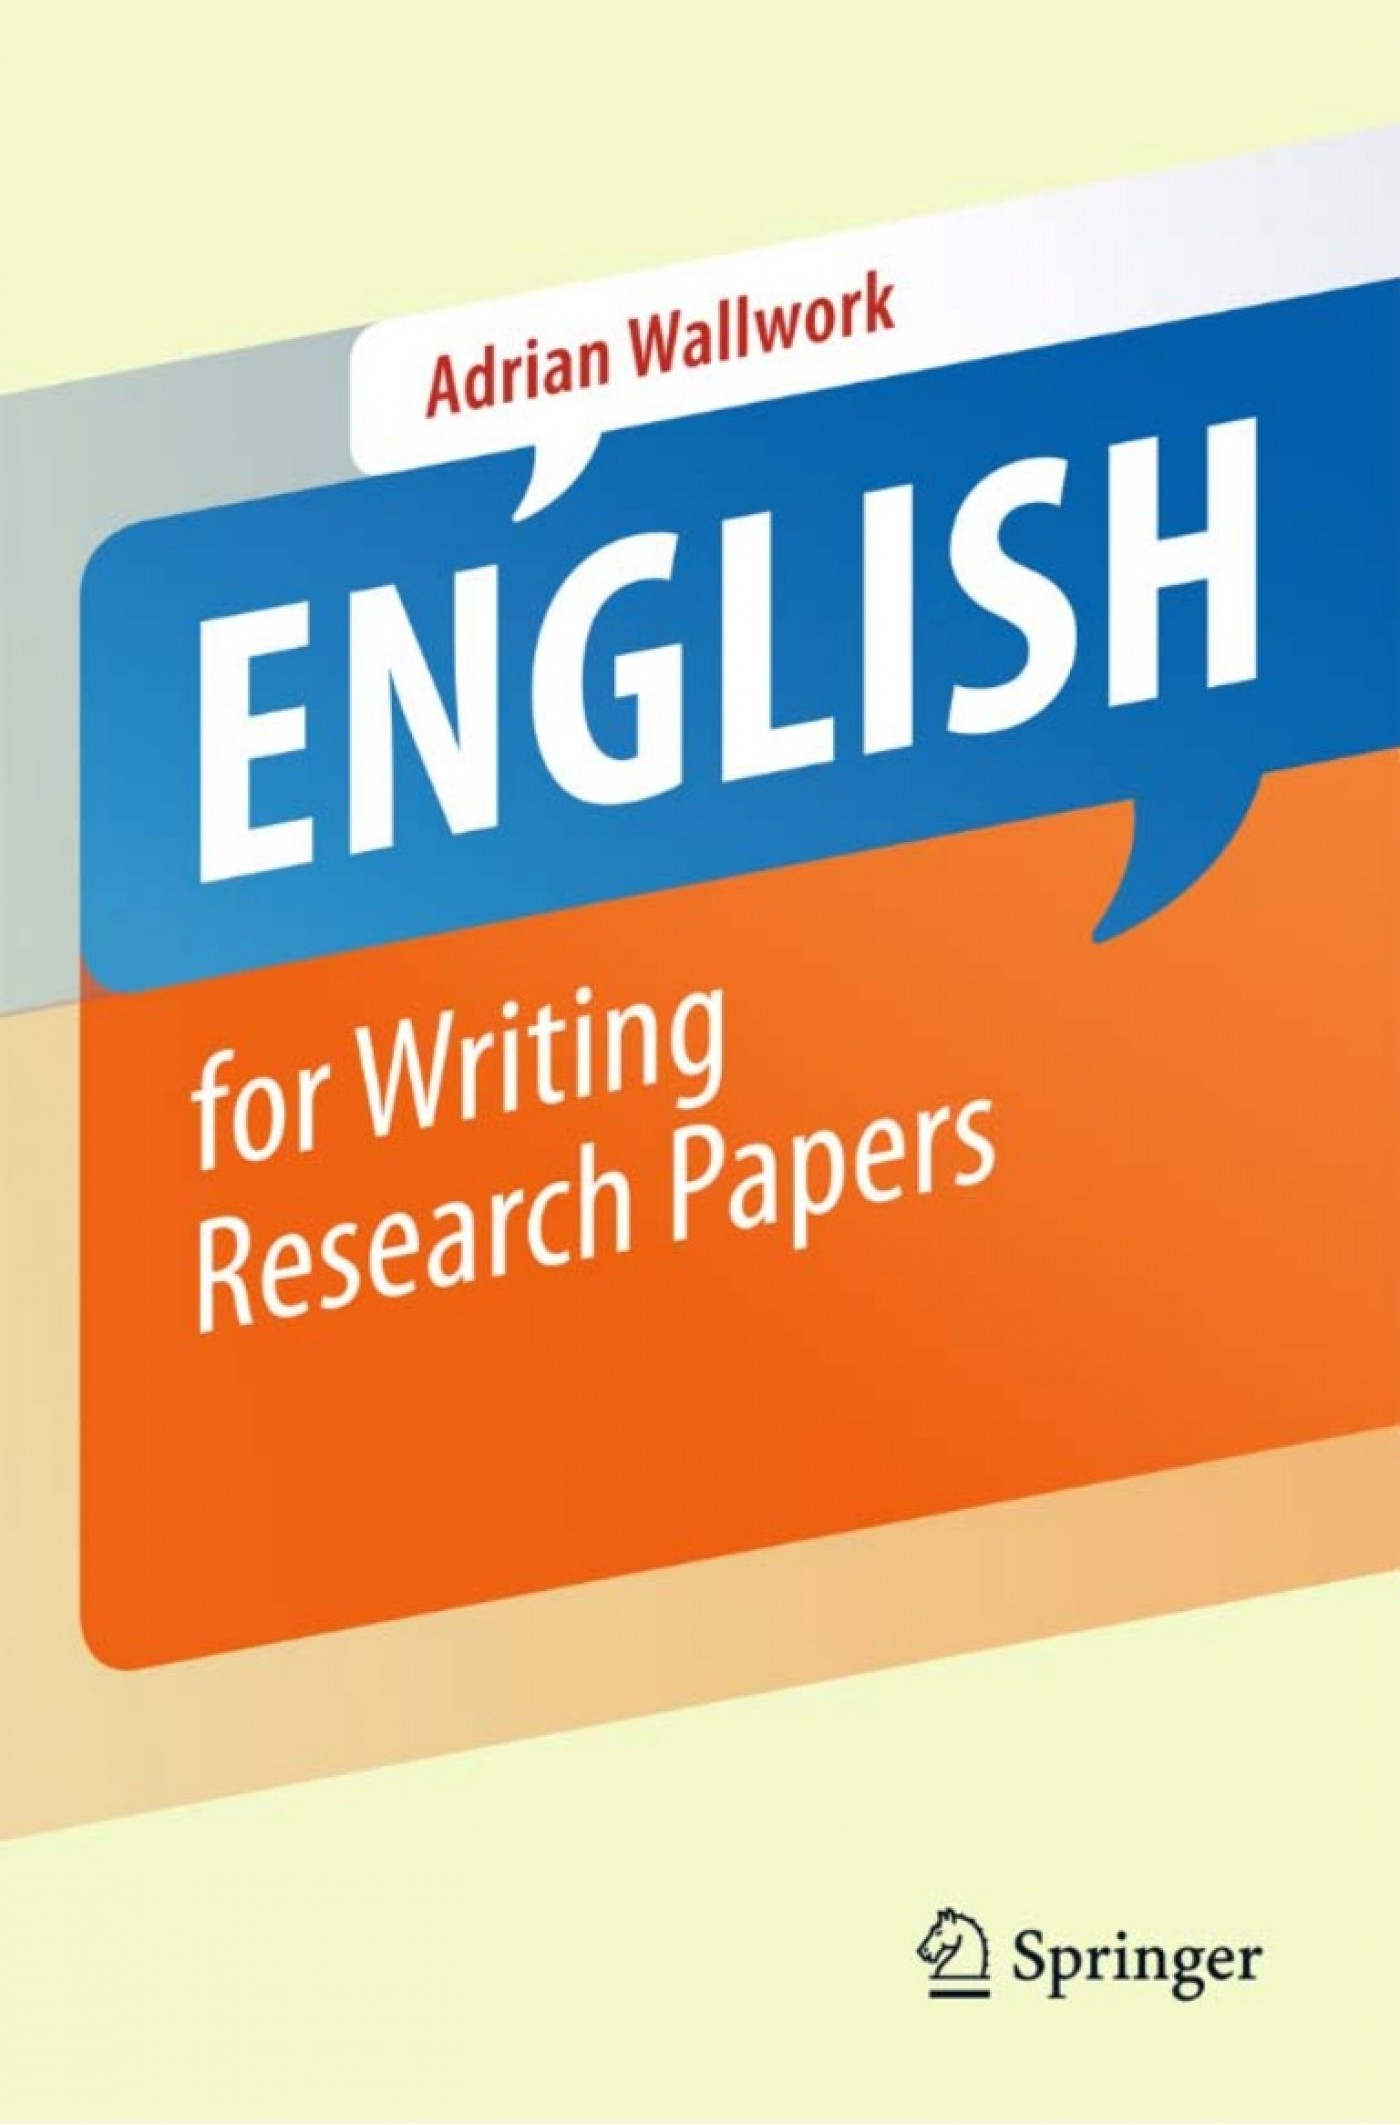 017 Research Paper Writing Englishforwritingresearchpapers Conversion Gate01 Thumbnail Unforgettable Rubric Software Free Download Prompts 1400